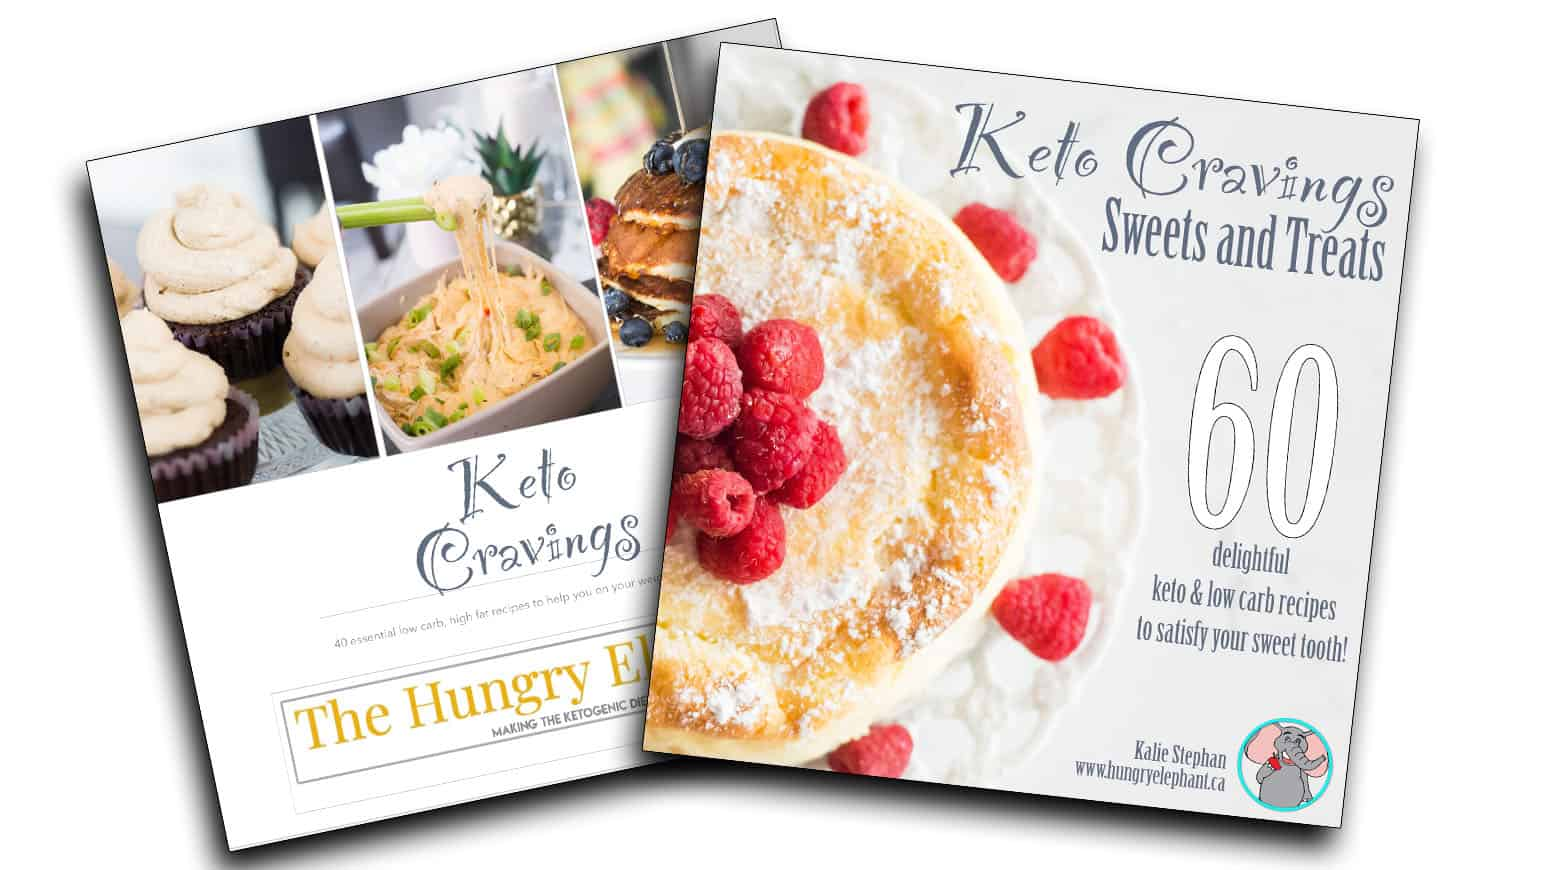 keto cravings cookbook, keto cravings